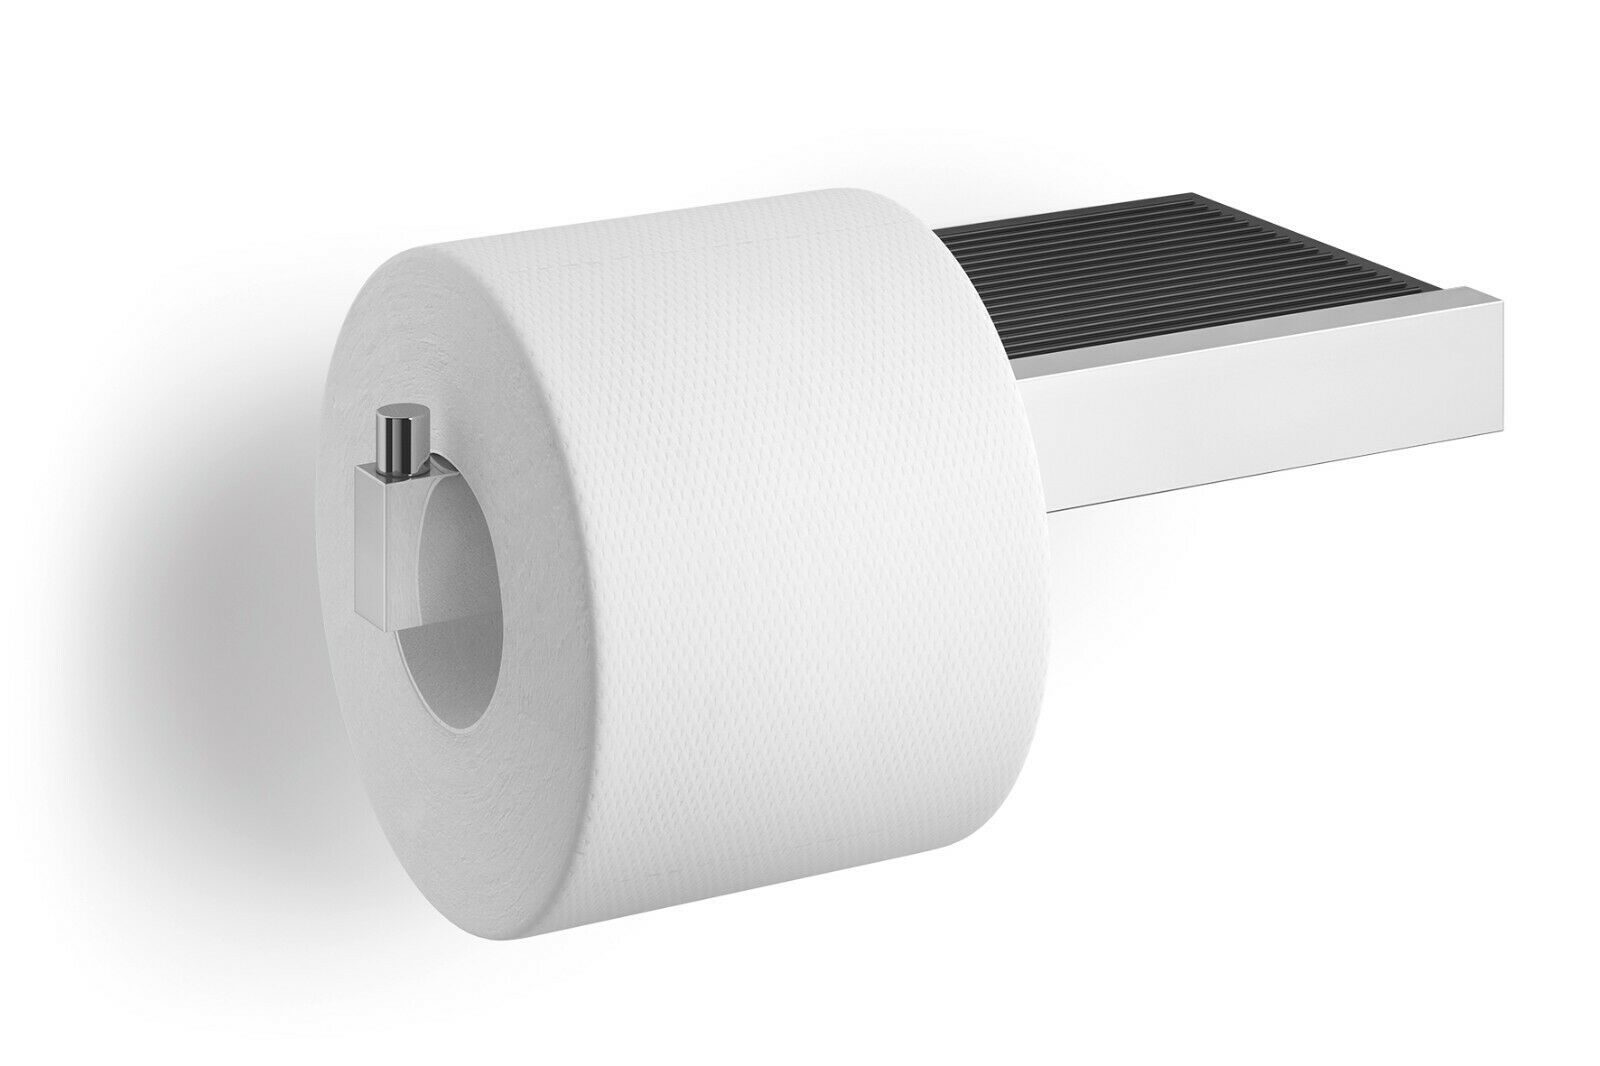 Zack Linea Polished Stainless Steel Toilet Roll Holder with Shelf 40407